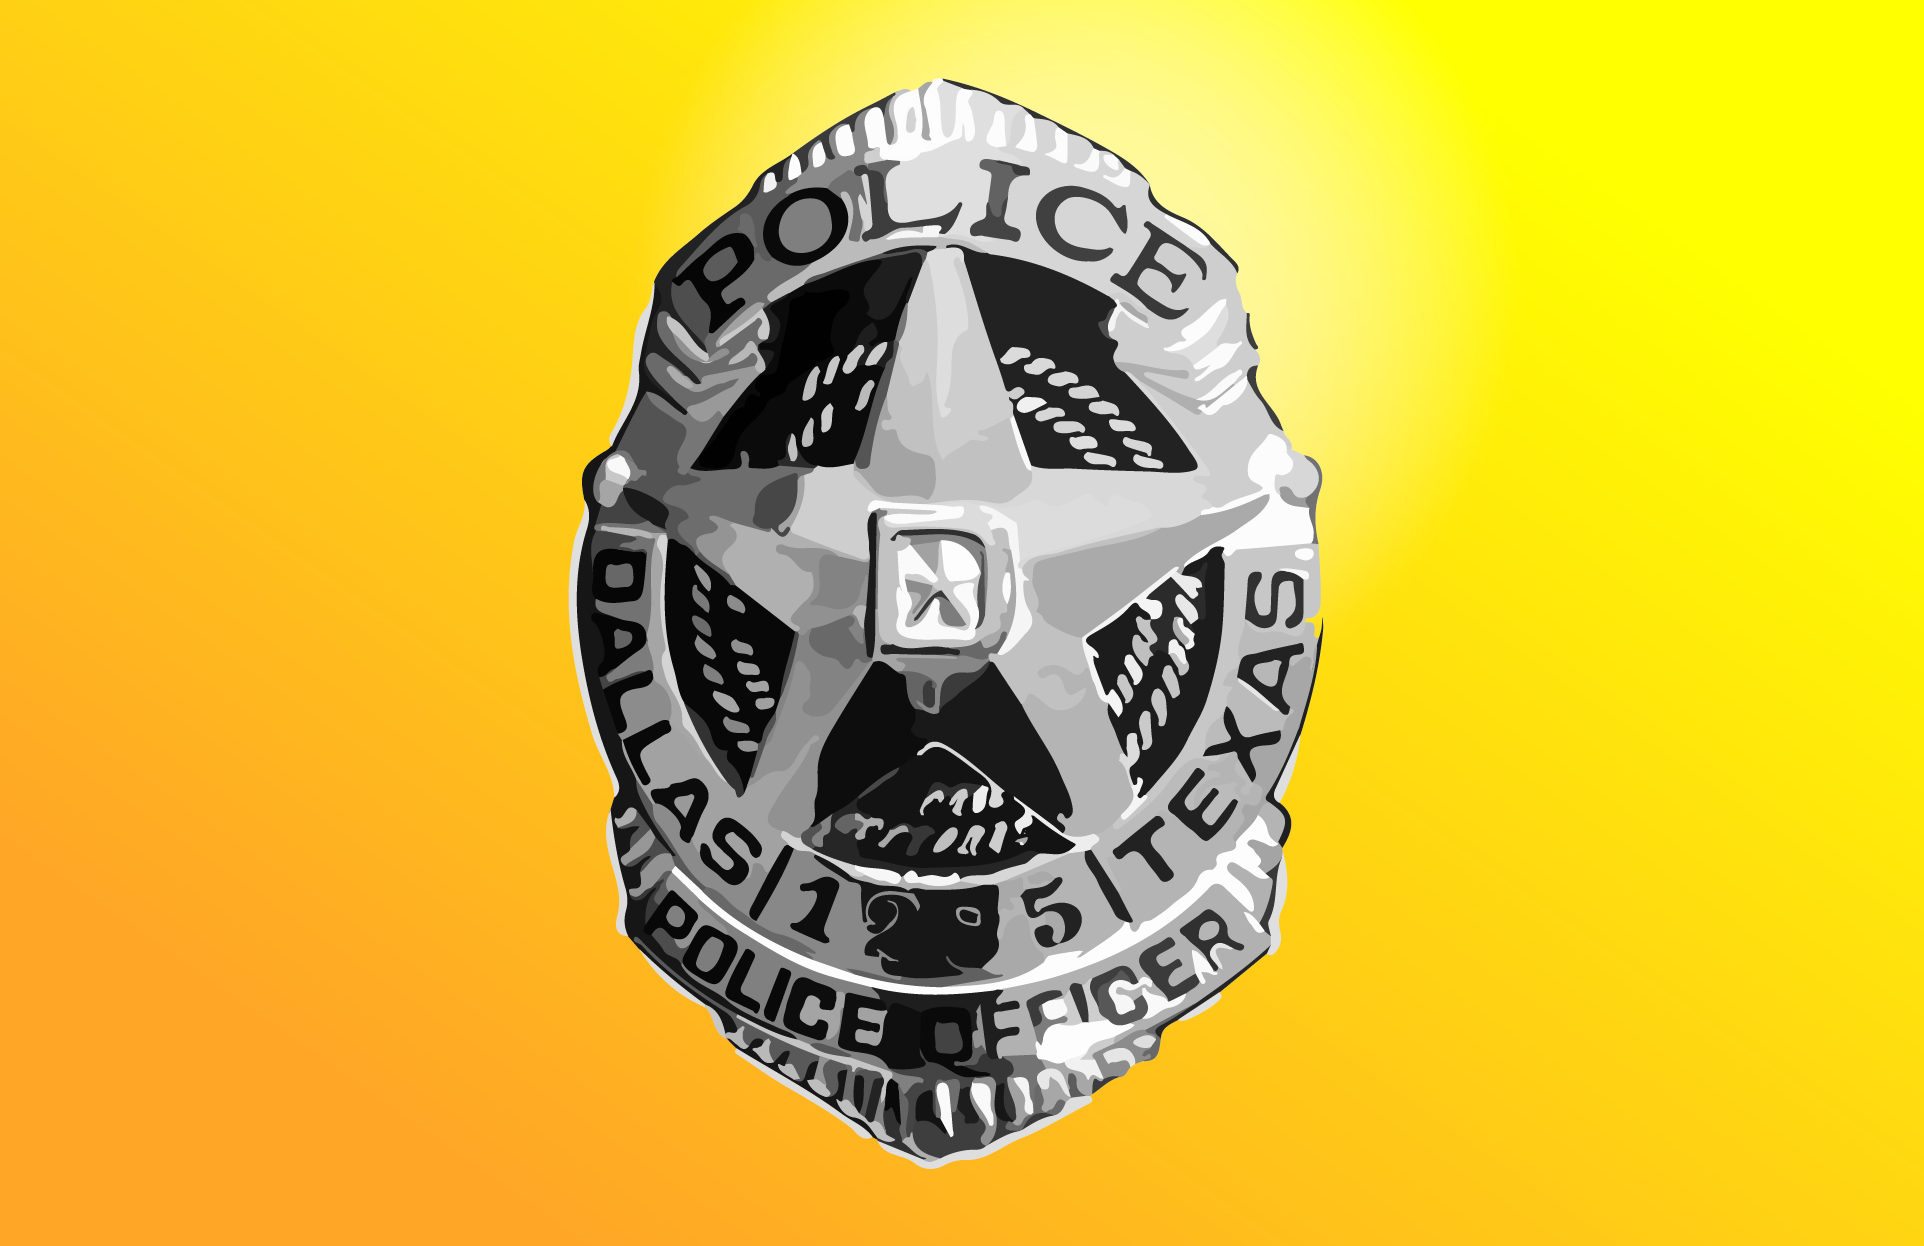 Dallas Police Officer Badge